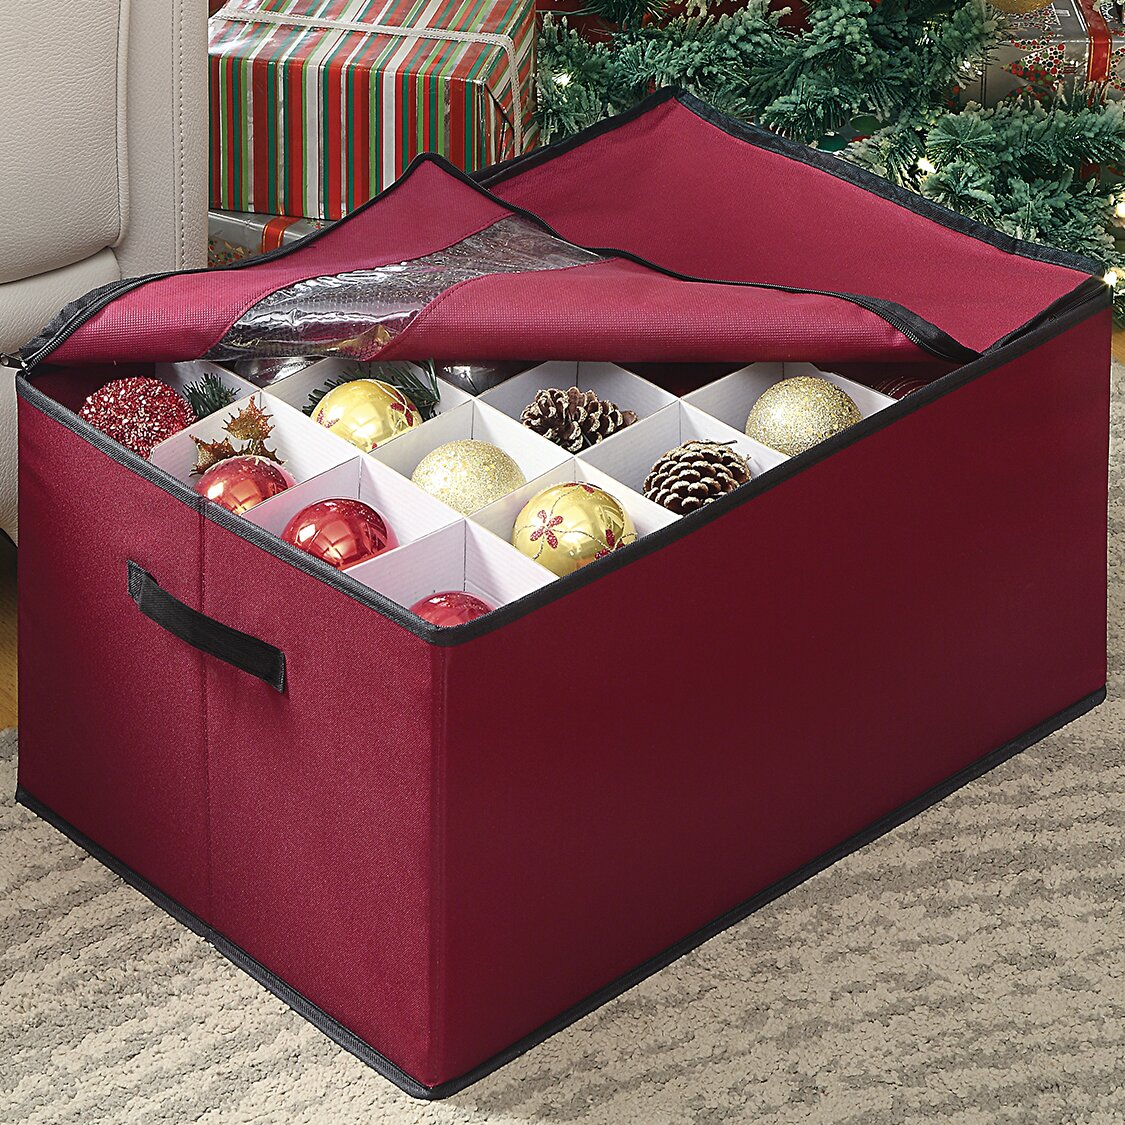 OIA Christmas Ornament Storage Box & Reviews | Wayfair